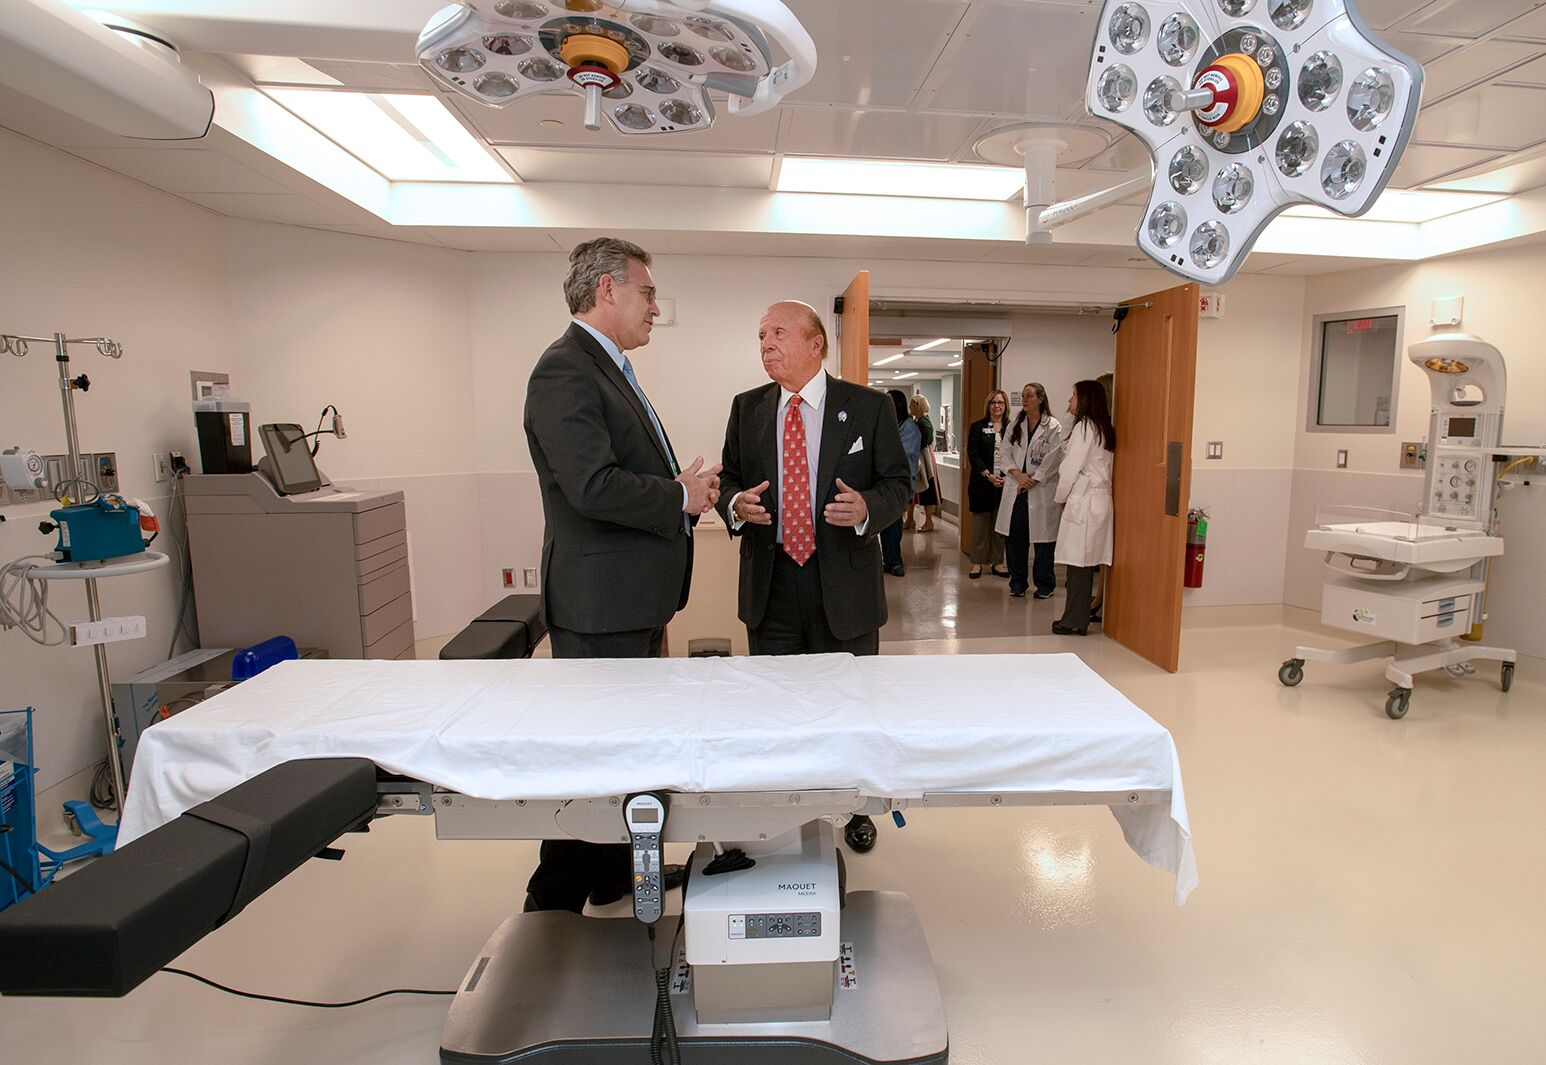 Saul Katz stands in the new recovery unit at North Shore University Hospital